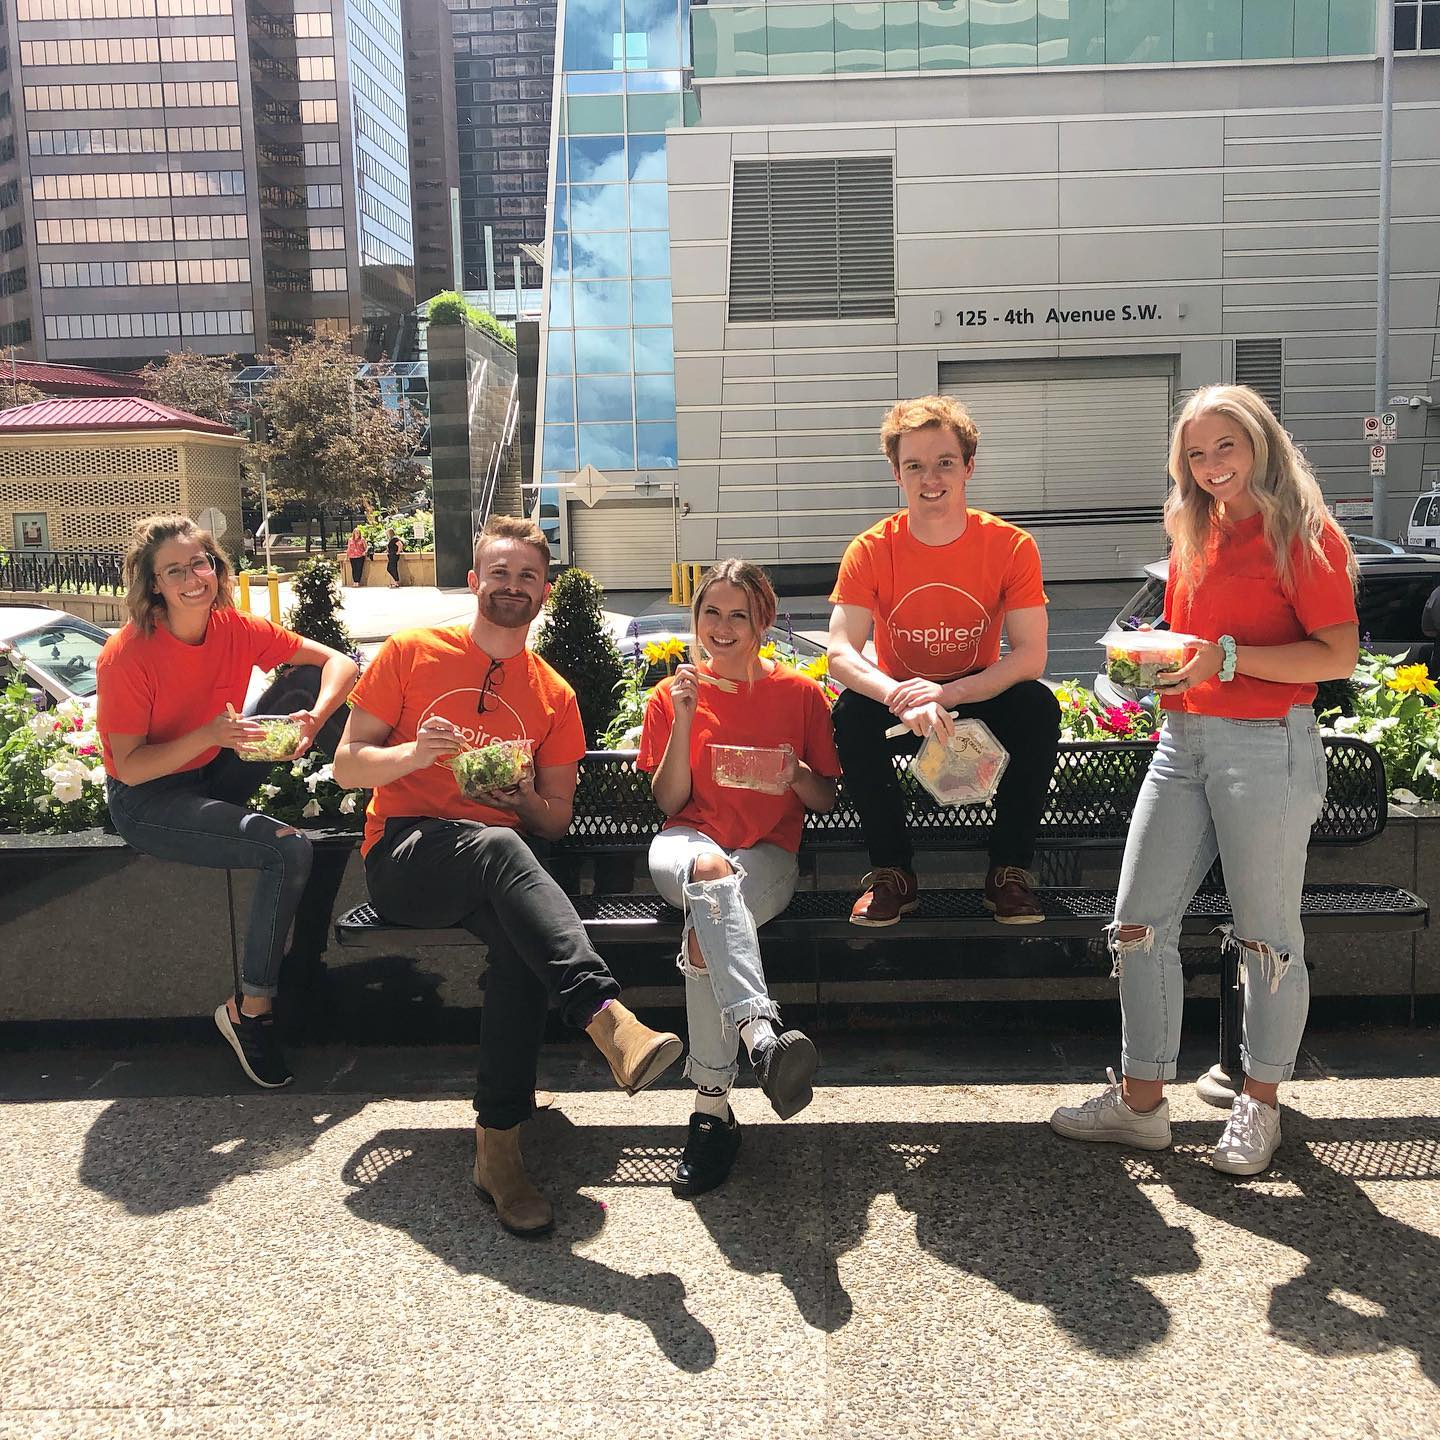 Calgary delivery service adds new meaning to the phrase, 'food for thought' during coronavirus ...